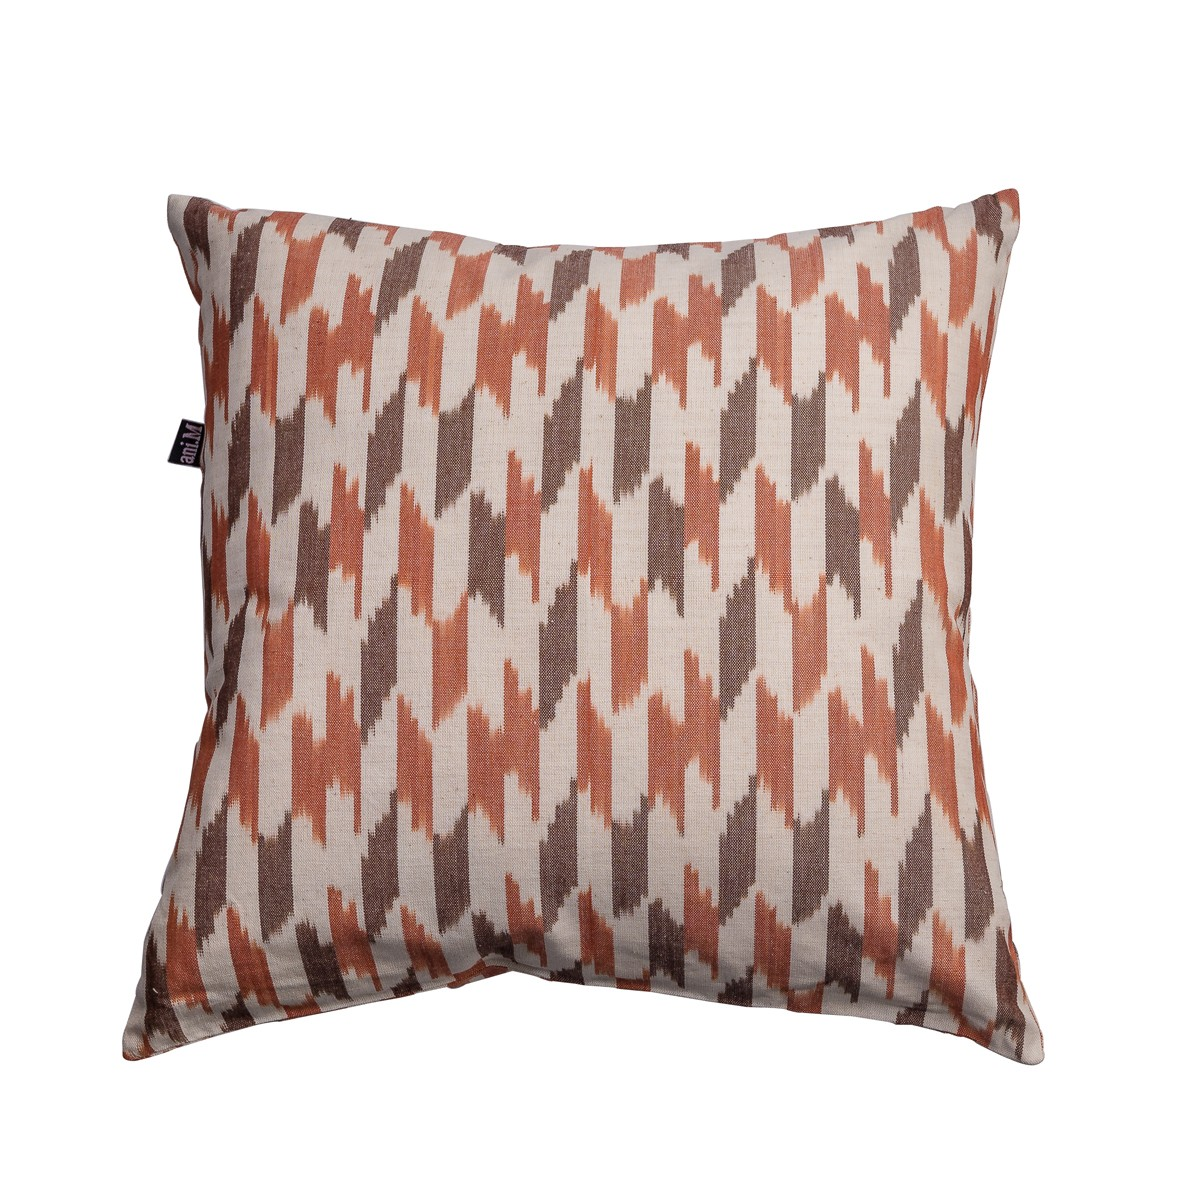 Single Square Orange Patterned Cushion Cover